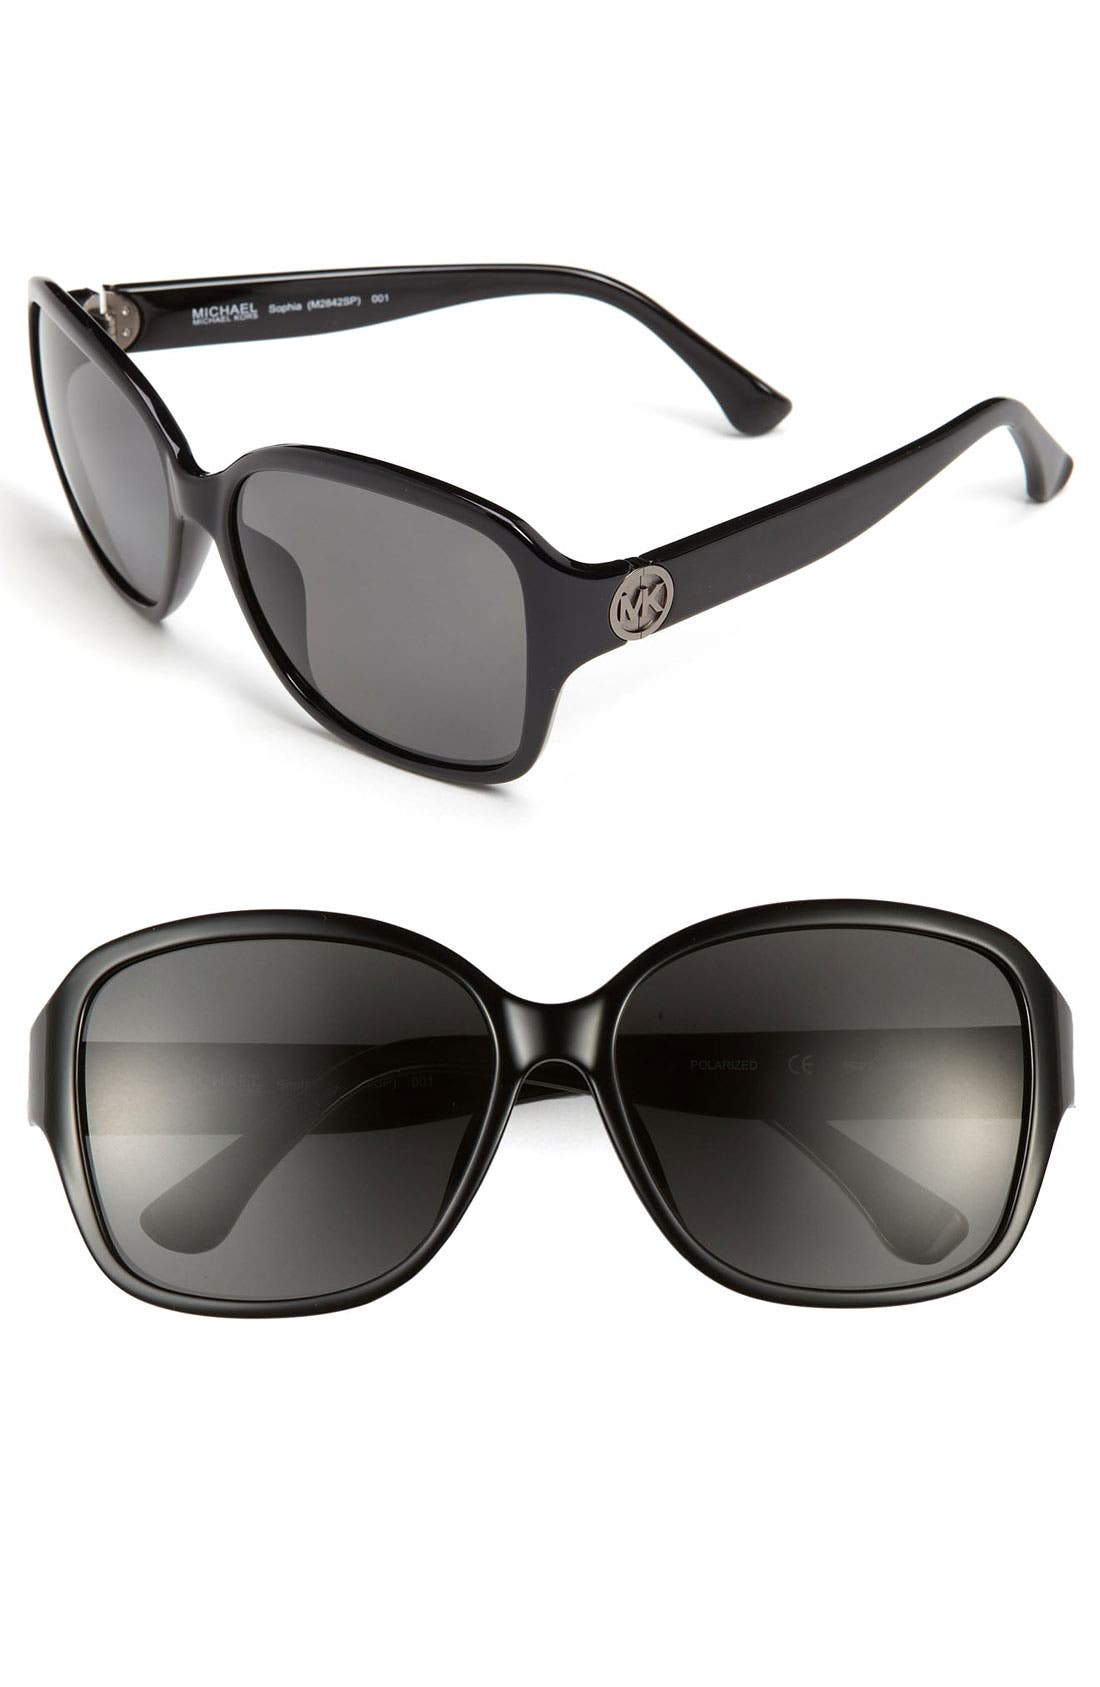 Alternate Image 1 Selected - MICHAEL Michael Kors 'Sophia' 58mm Polarized Sunglasses